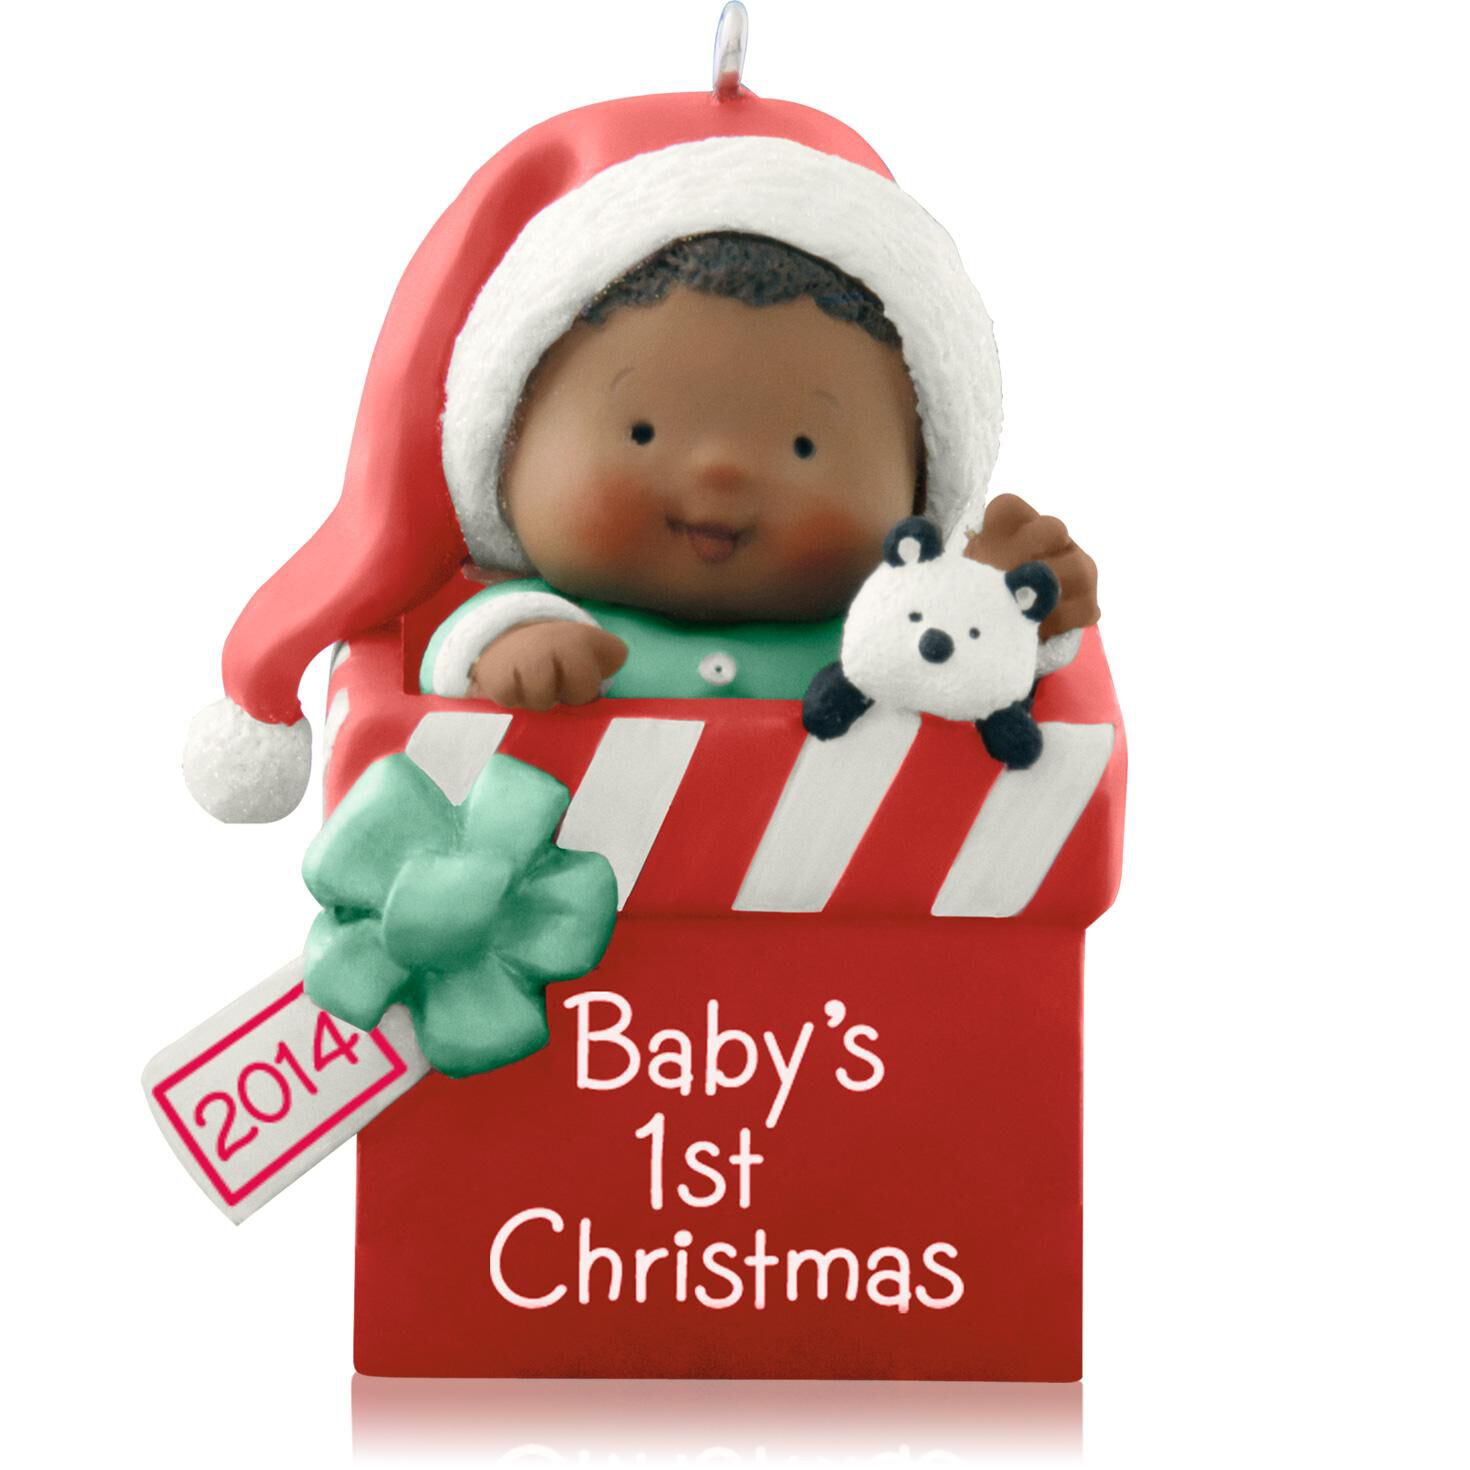 babys first christmas keepsake ornaments hallmark